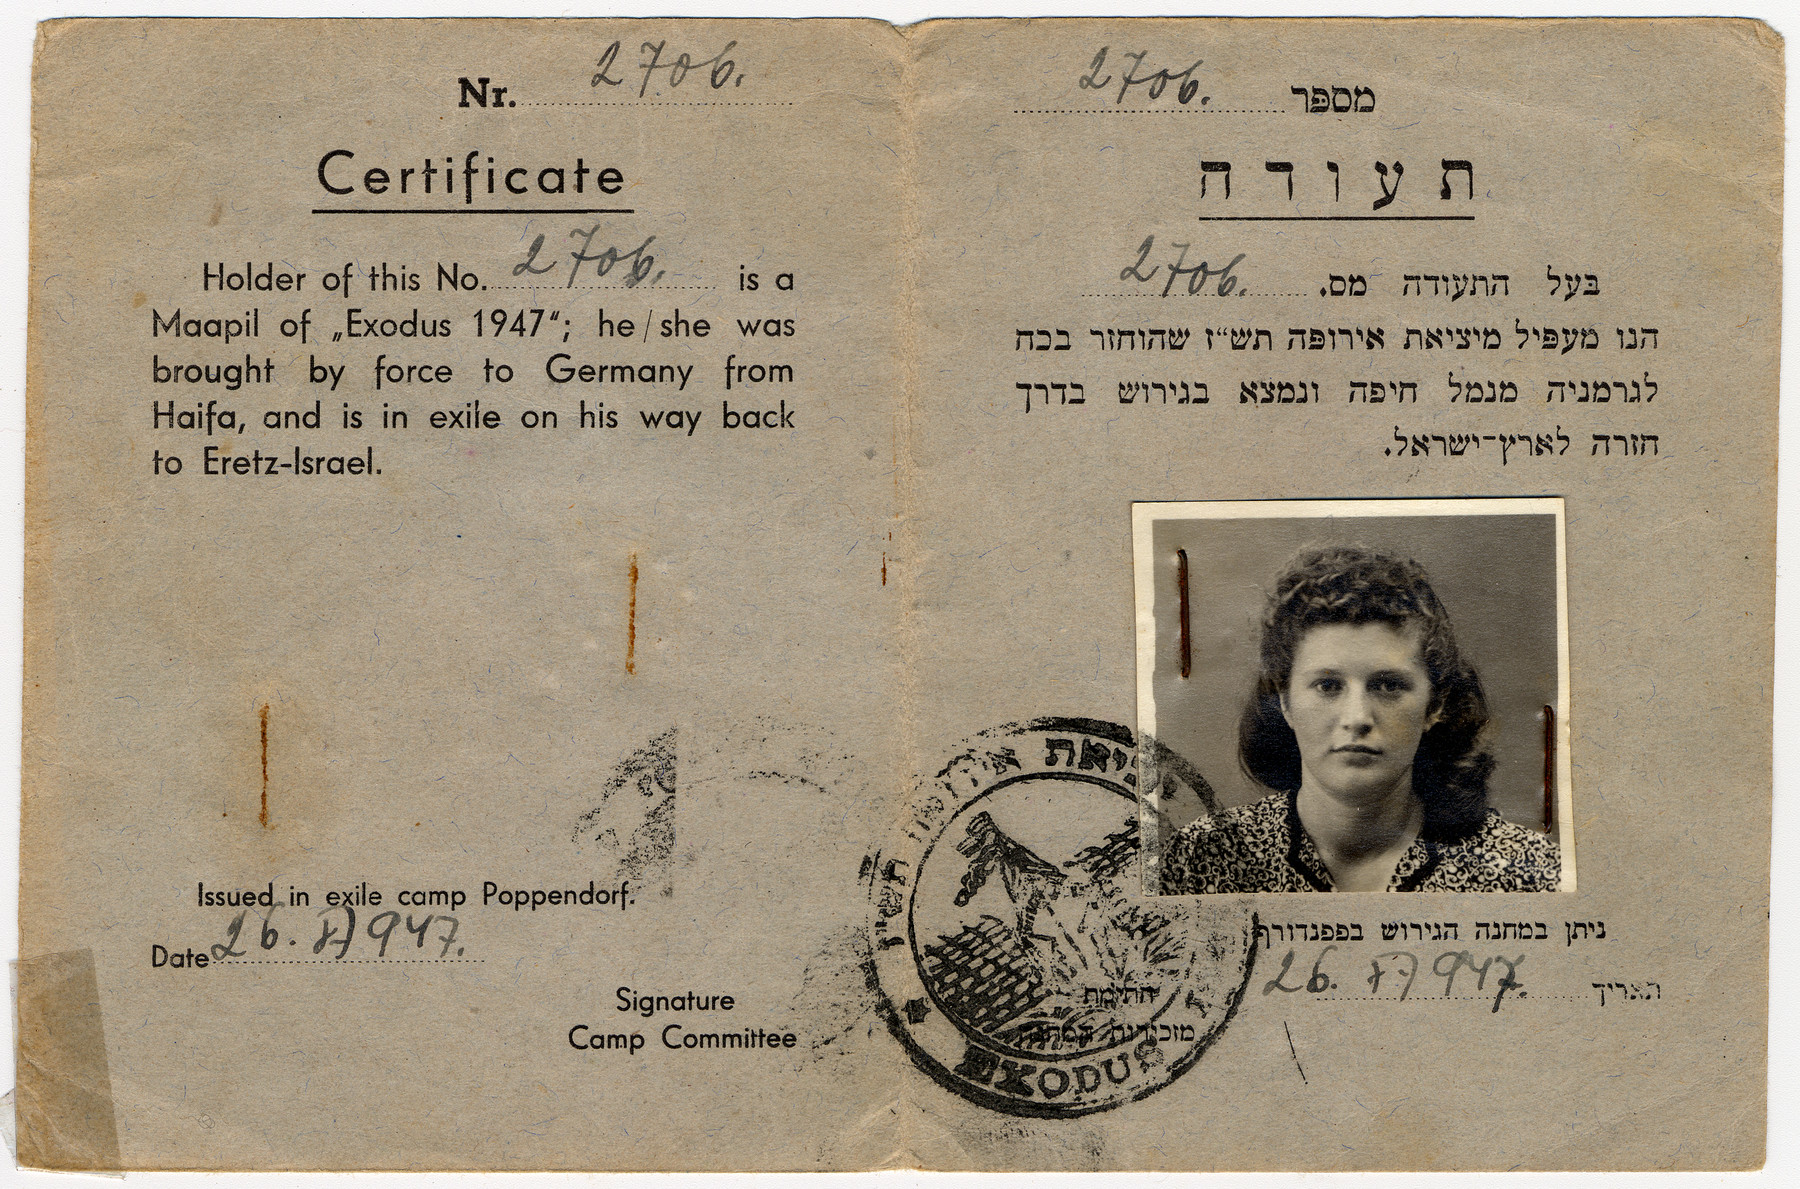 """Exodus certificate issued to Sara Wiener in the Poppendorf displaced persons' camp.  The text inside reads """"Holder of this No. is a Maapil of """"Exodus 1947""""; he/she was brought by force to Germany from Haifa, and is in exile on his way back to Eretz-Israel""""."""